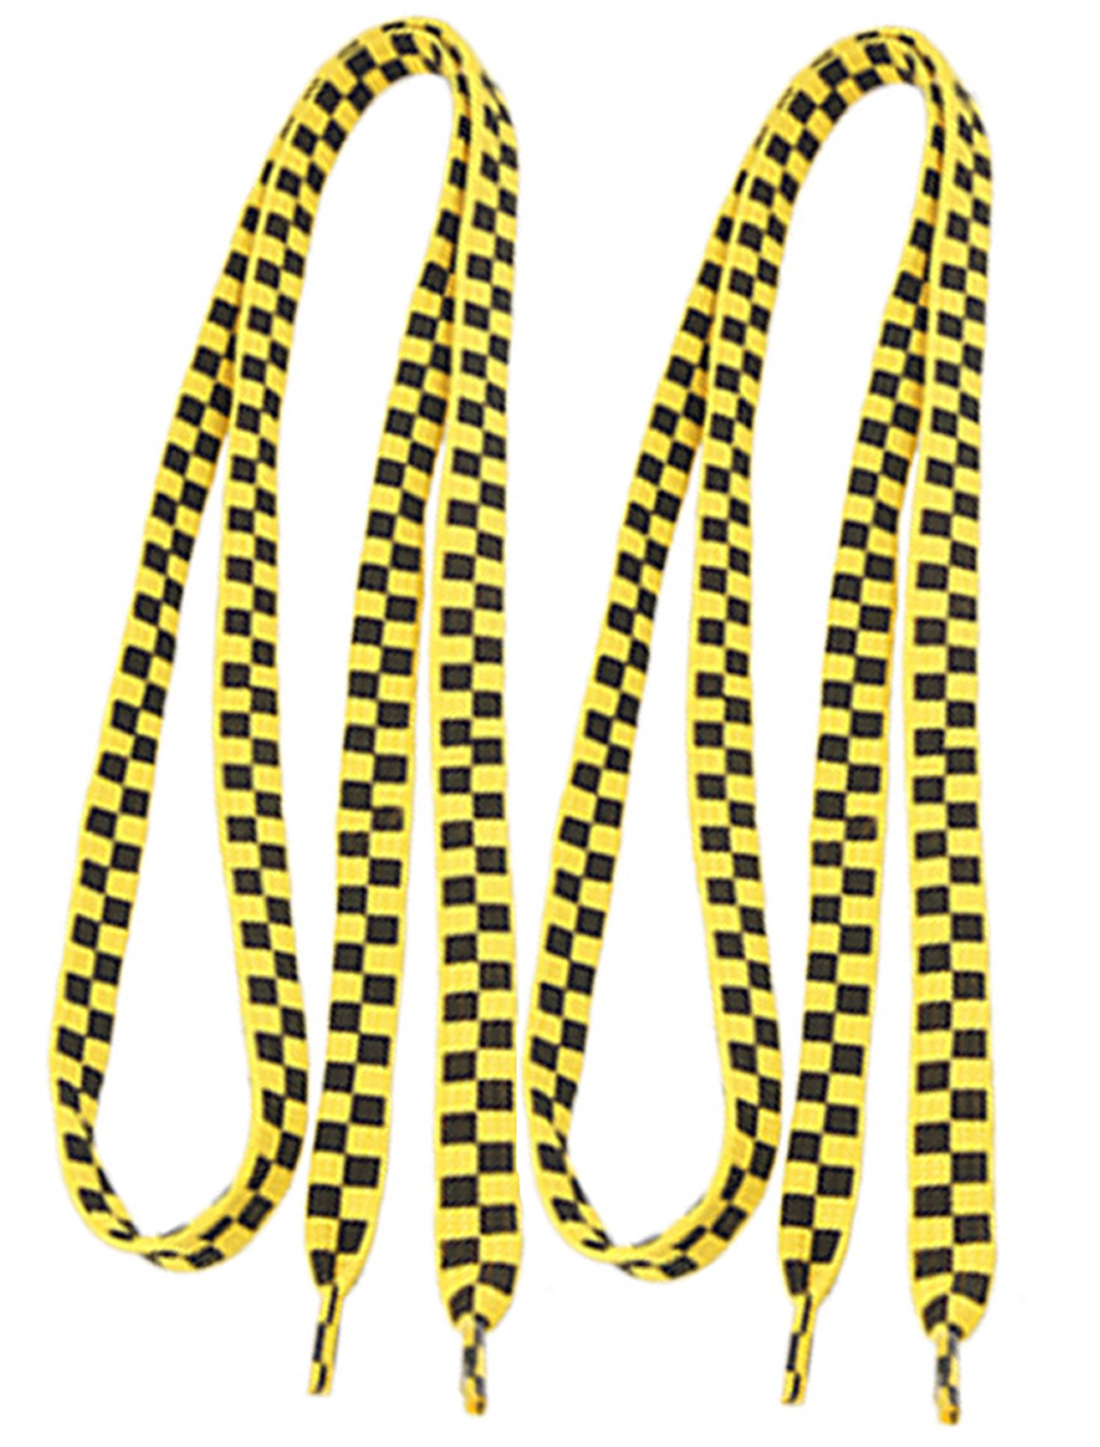 2 Pcs Yellow Black Plaids Pattern Polyester Nylon Shoelaces for Canvas Shoes